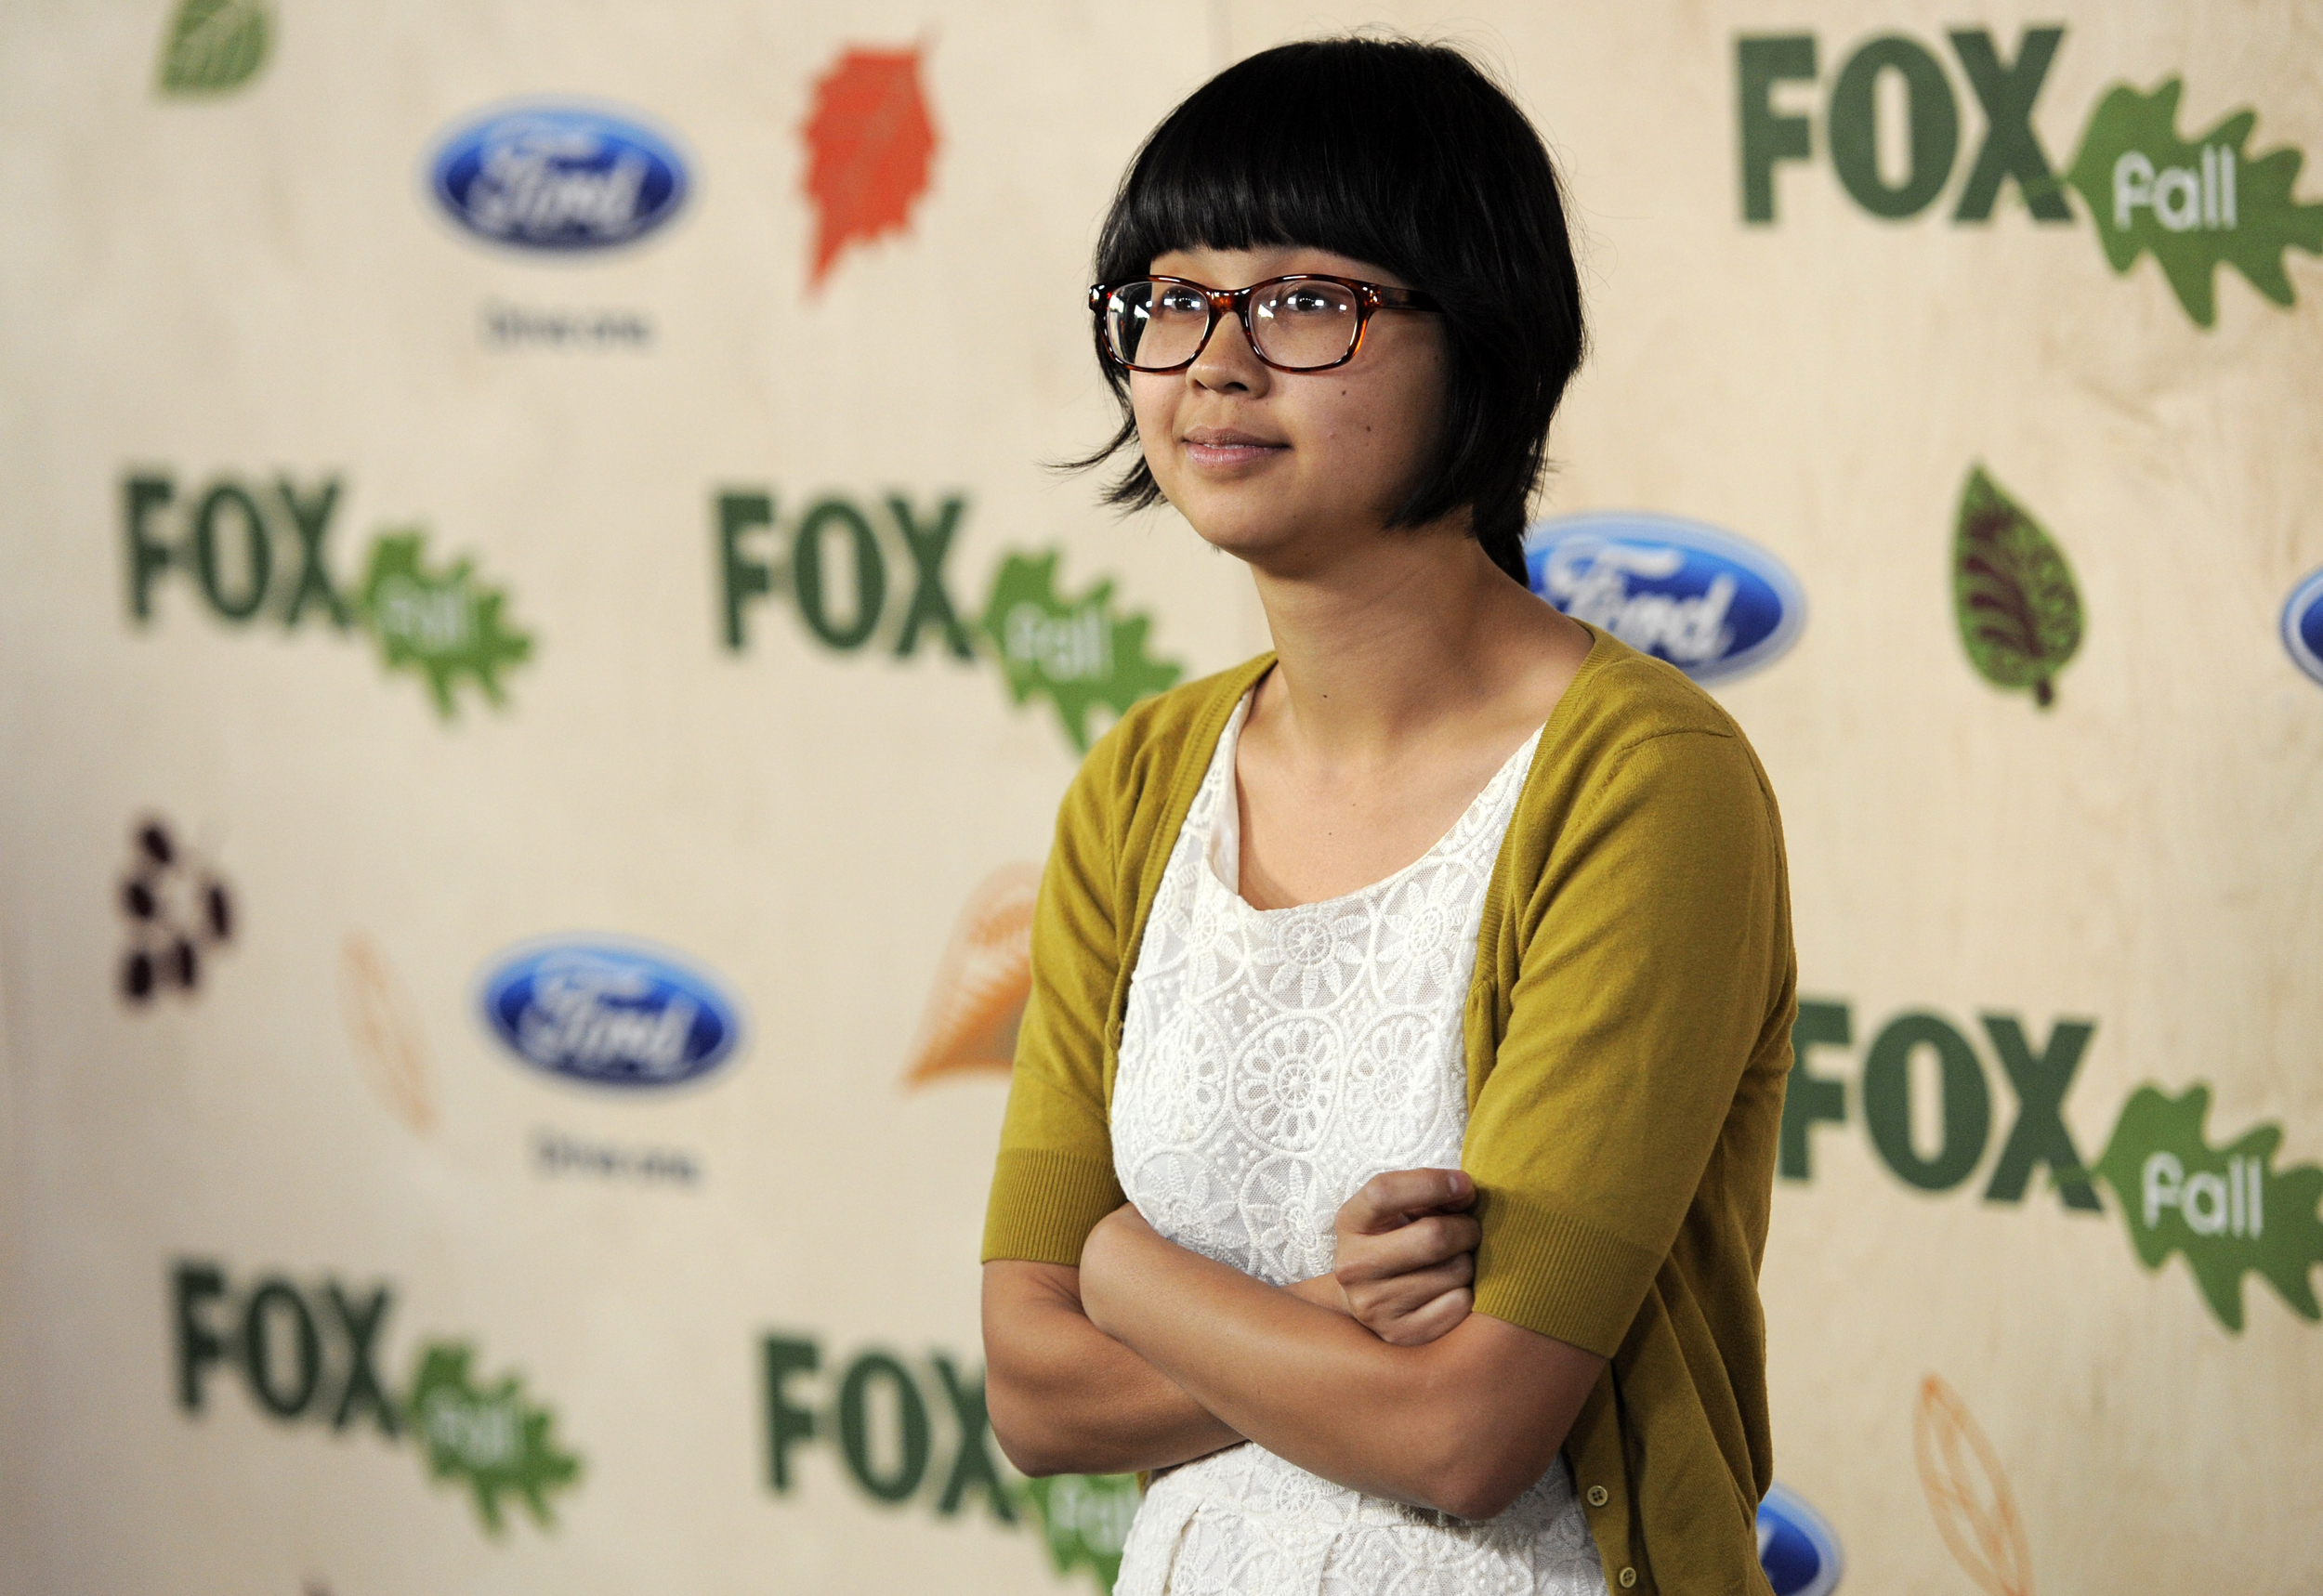 Image: Charlyne Yi, a cast member in the television series